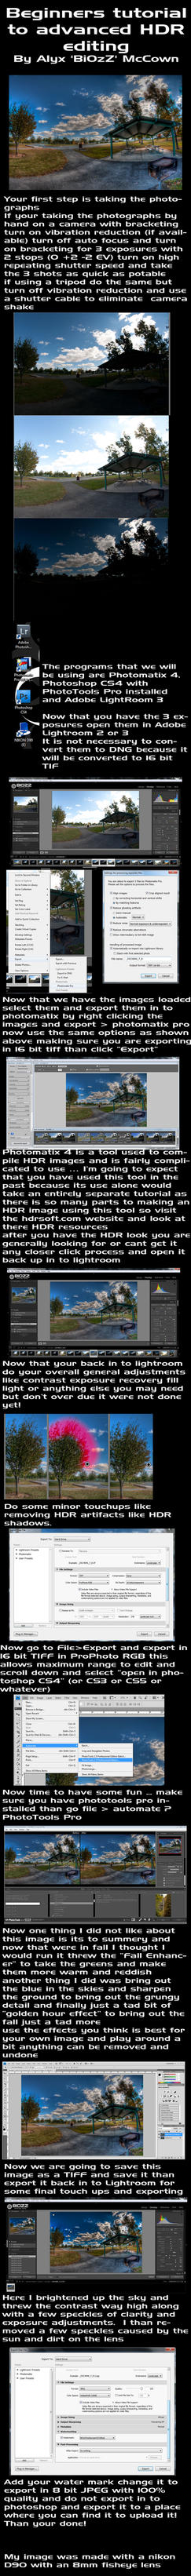 HDR tutorial by BiOzZ